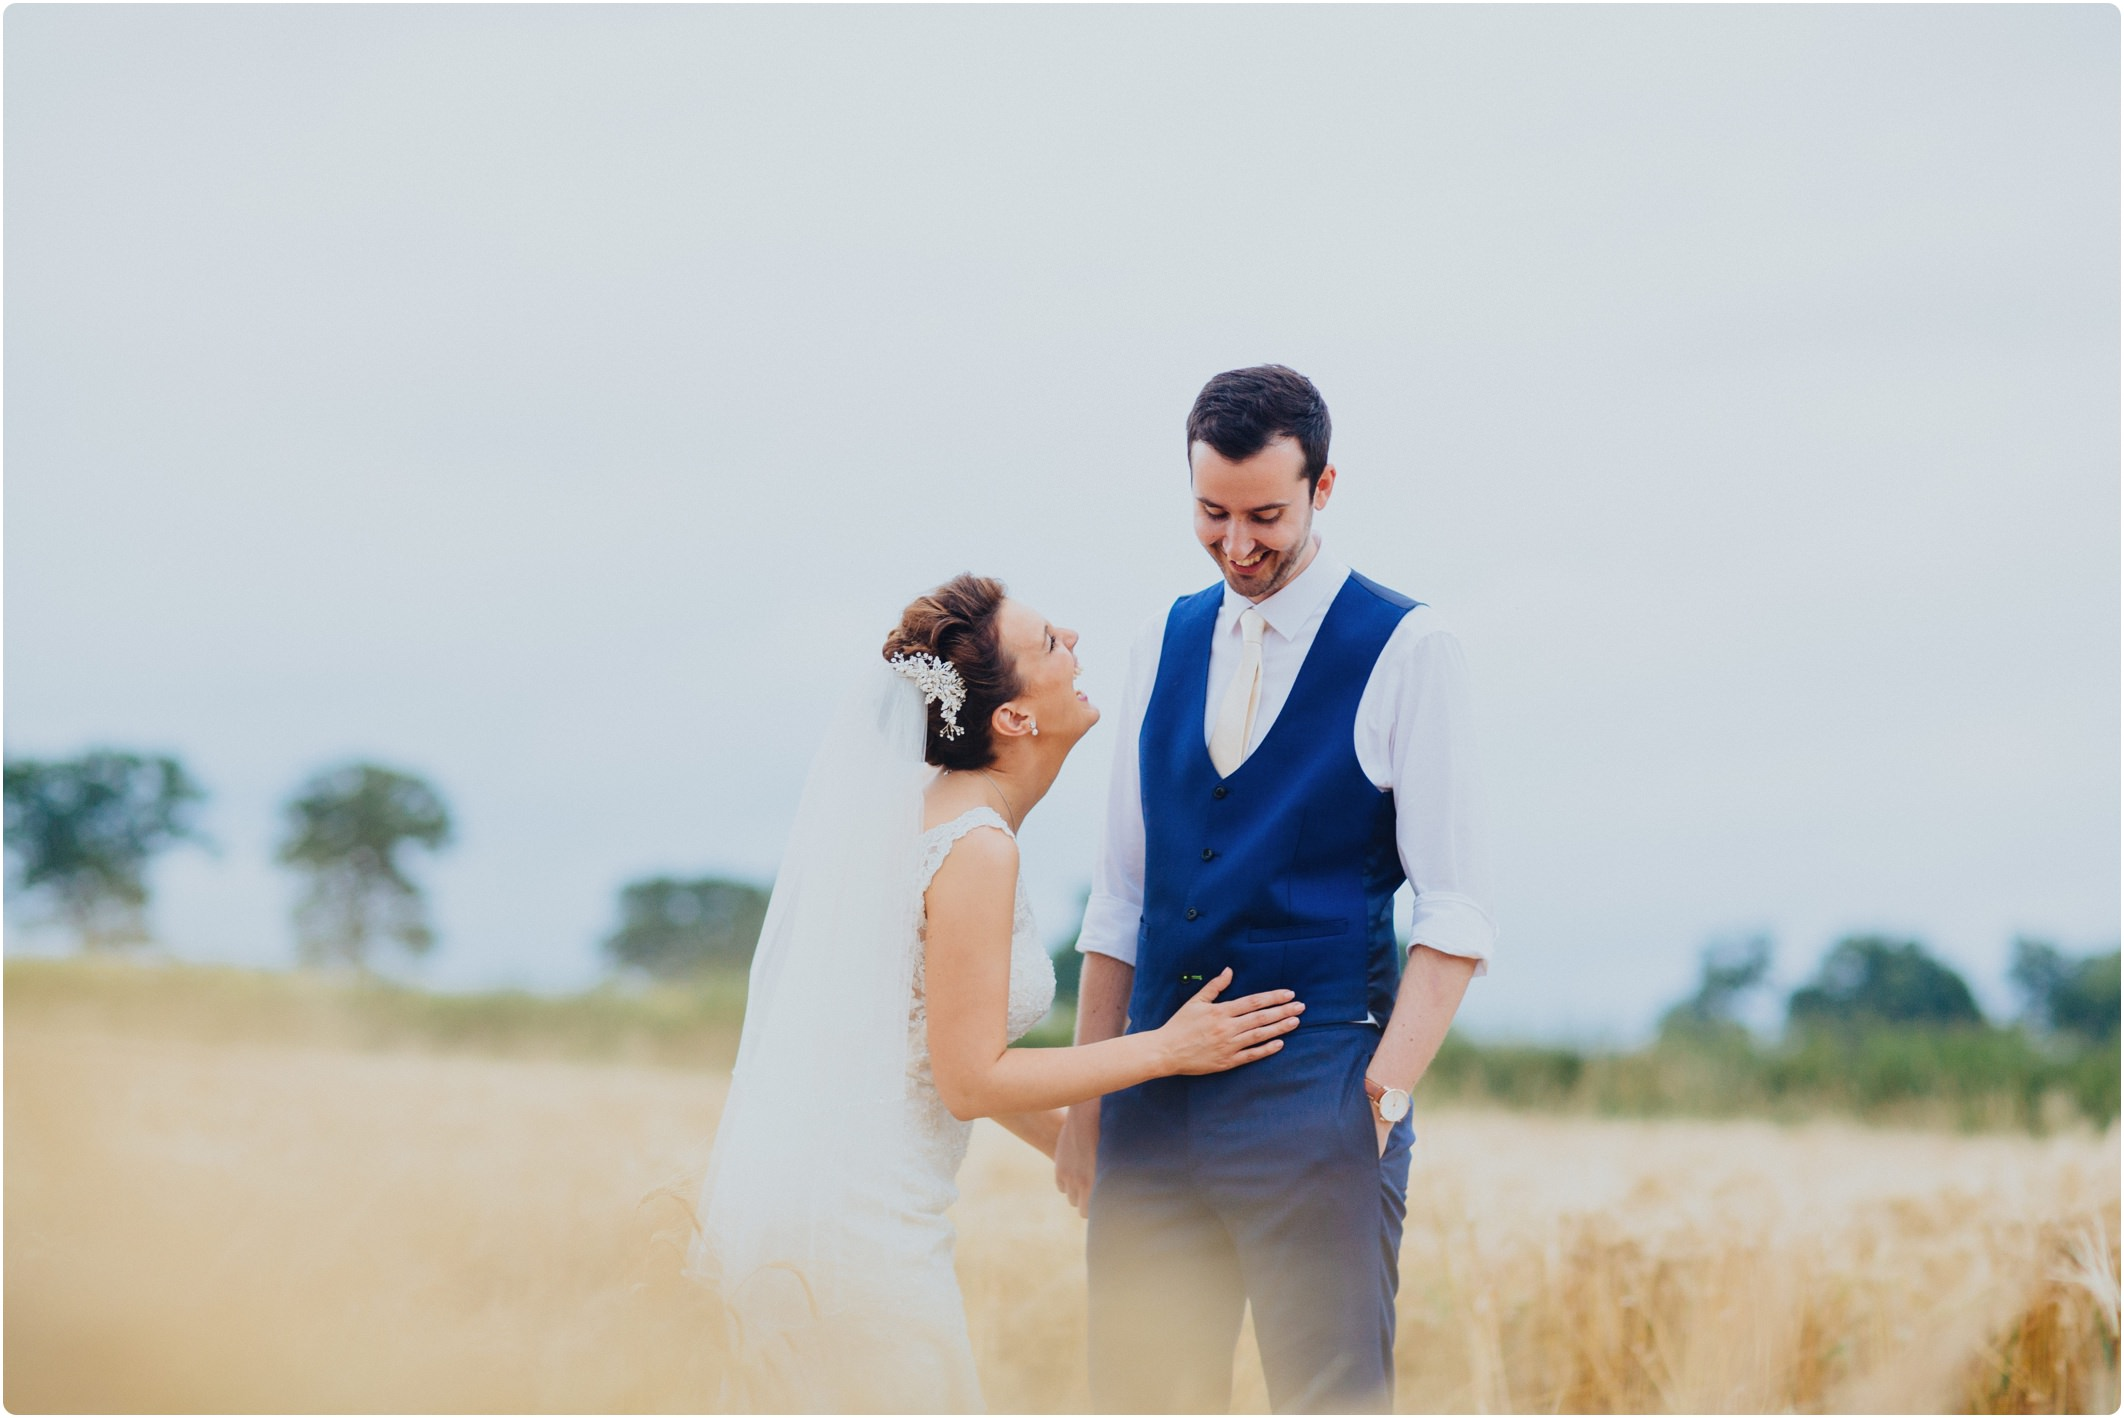 Swallows Nest Barn wedding couple shoot in field